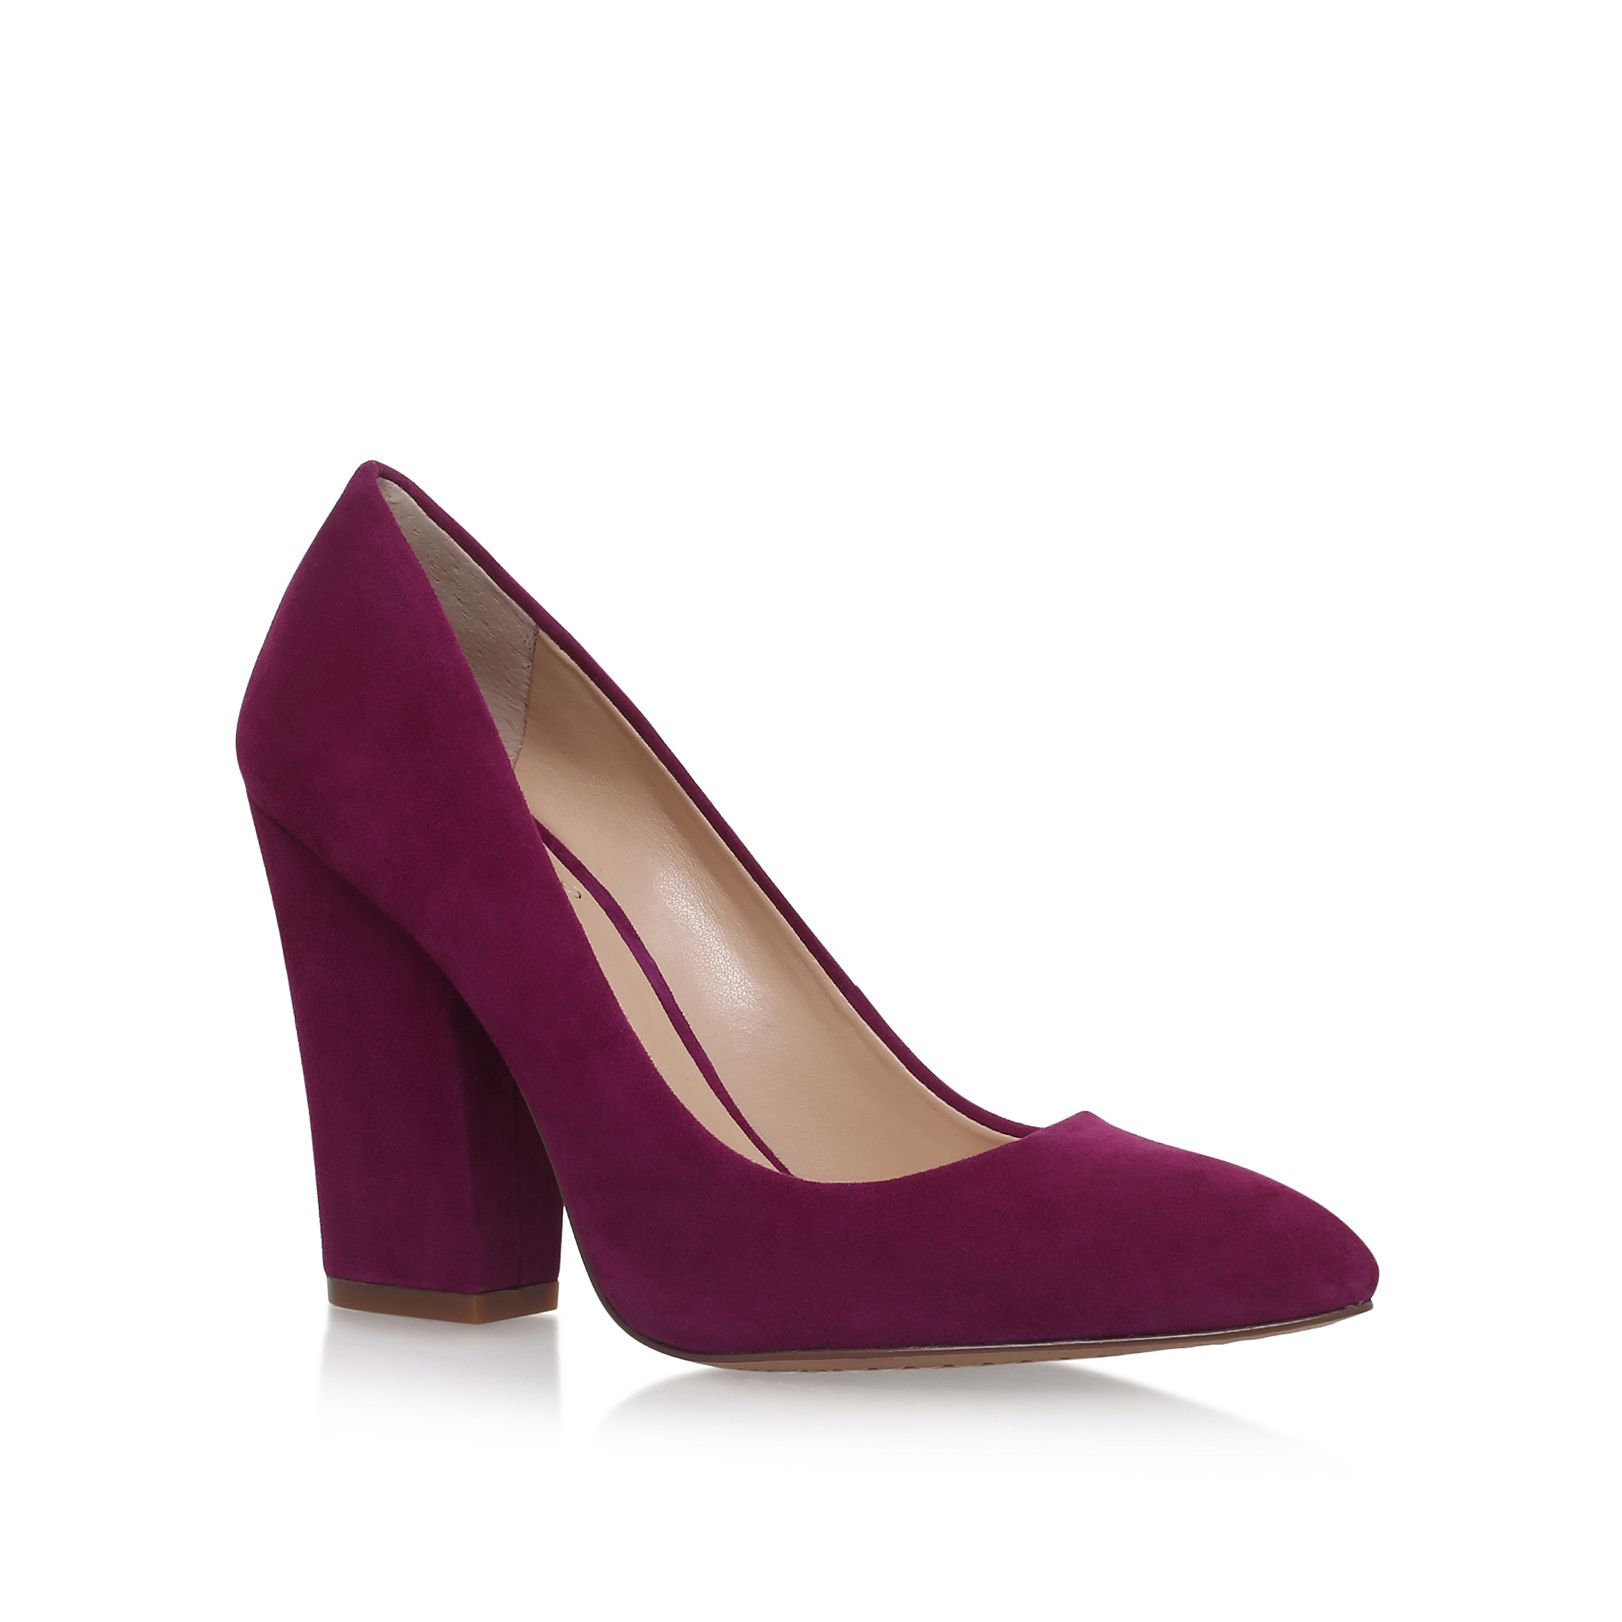 Vince Camuto Vince Camuto Brayton court shoes, Red